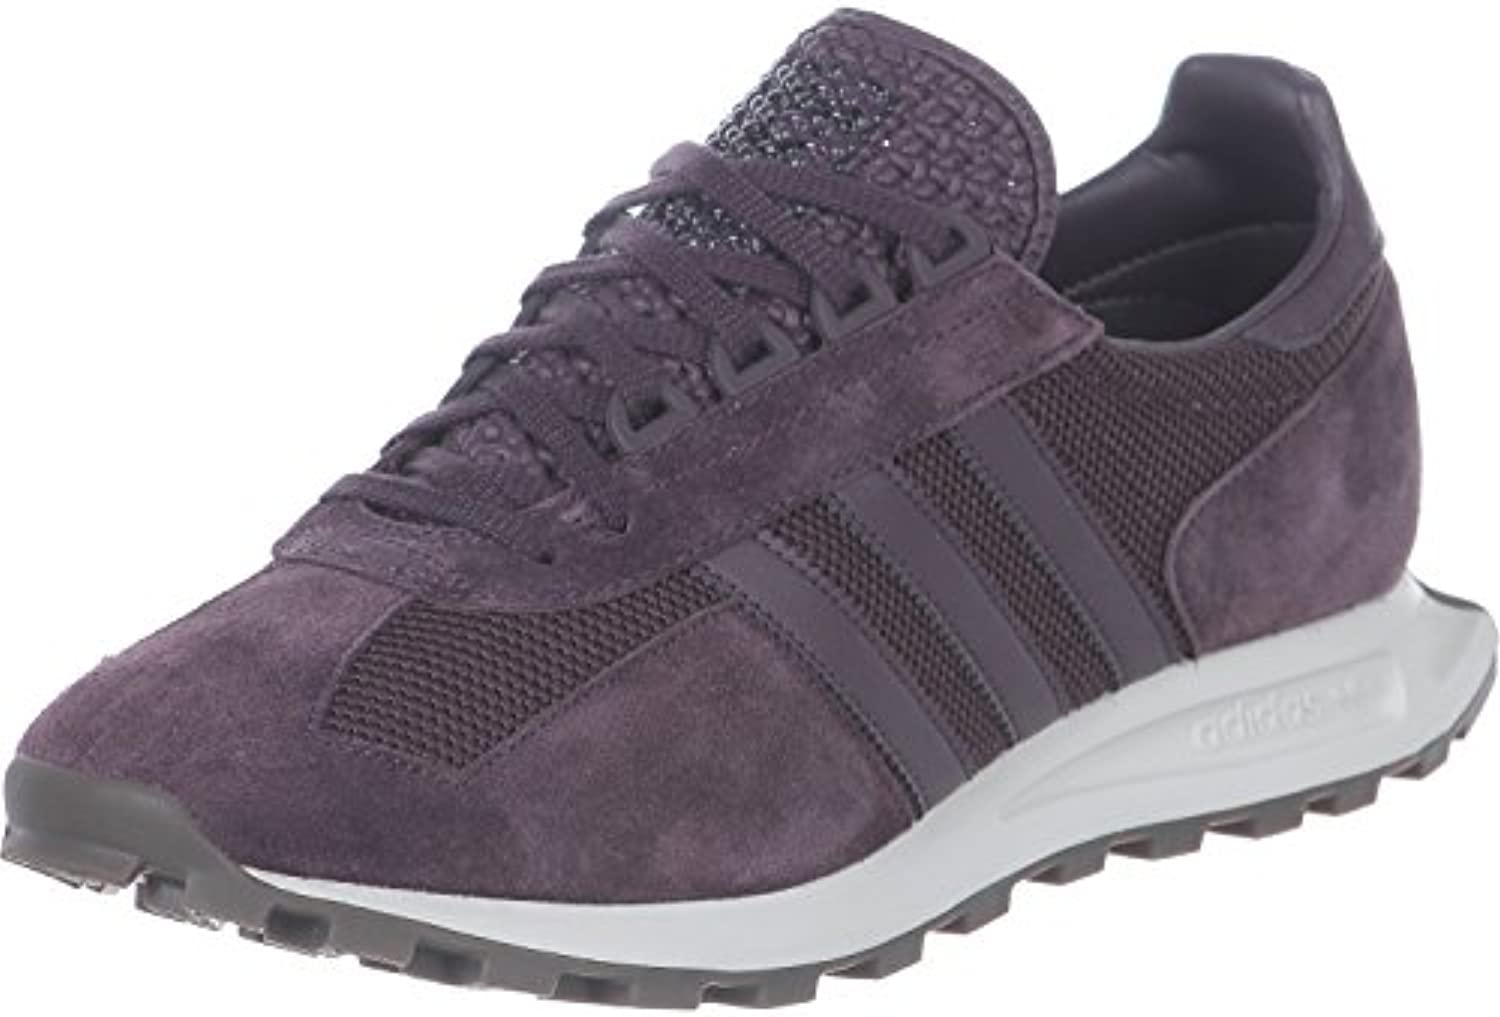 Adidas Racing 1 Schuhe 9,0 mineral red/talc -